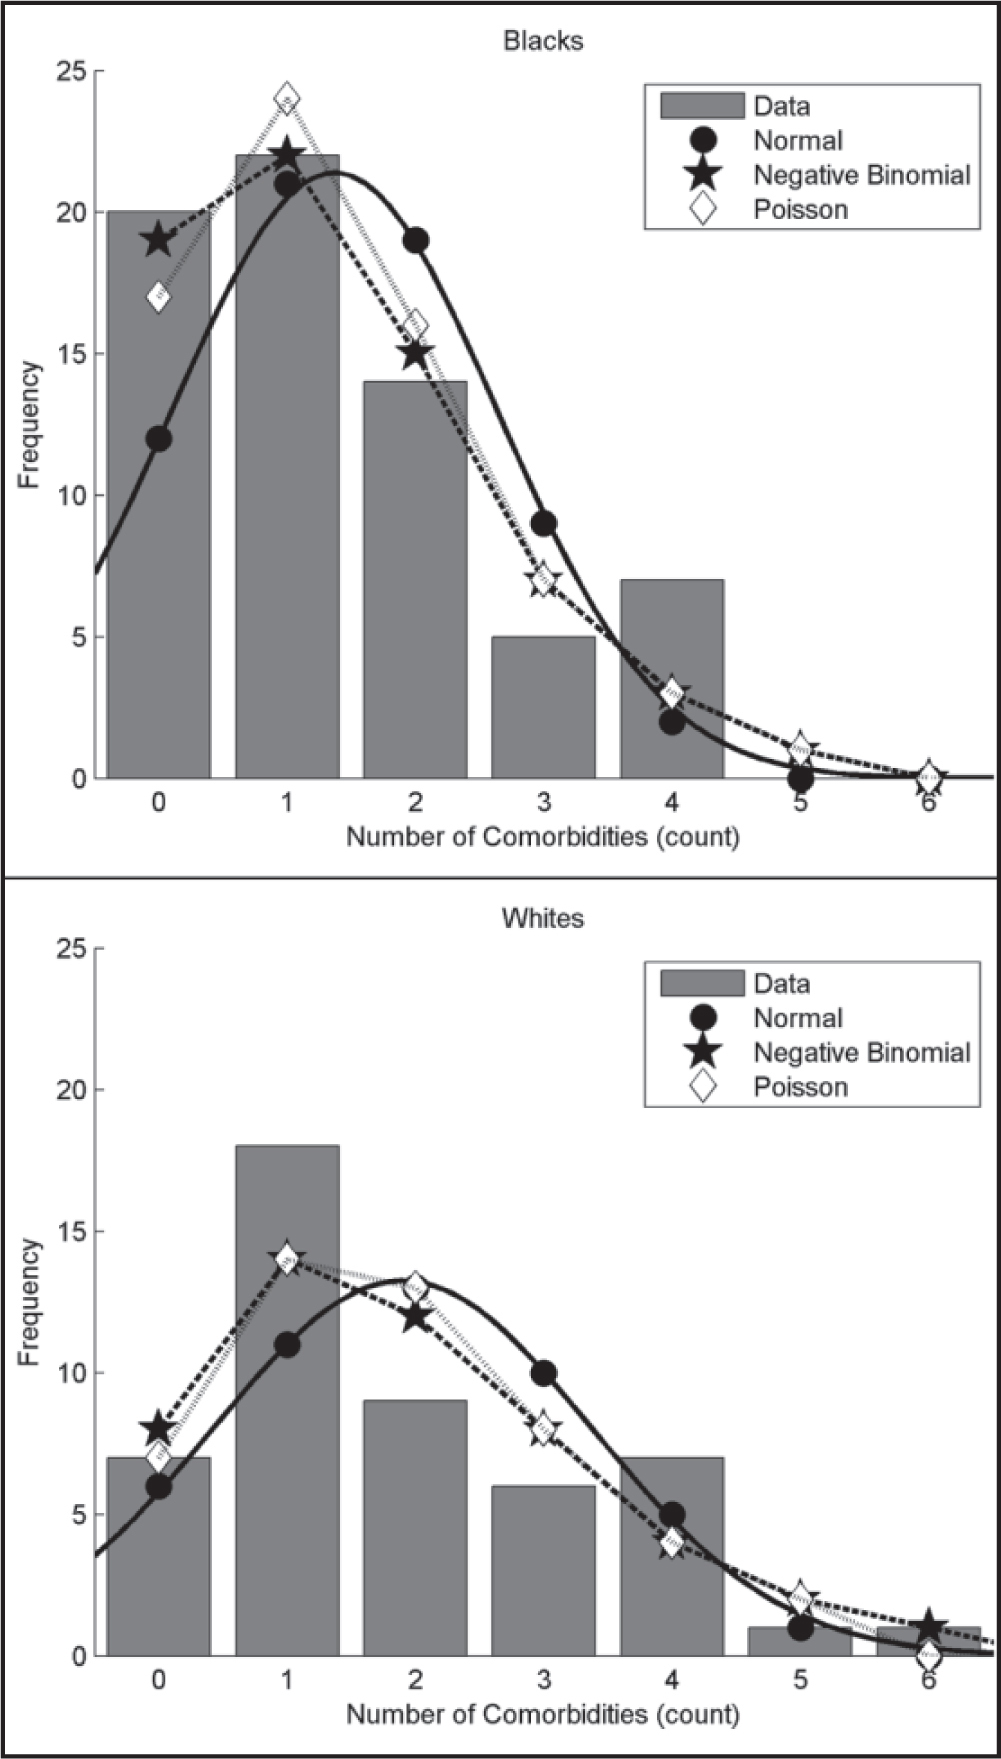 Histograms of unweighted Charlson Comorbidity Index data by race, with overlays of predicted frequencies for three different regression models. Predicted frequencies are identical for the standard Poisson and Poisson with overdispersion regression models.